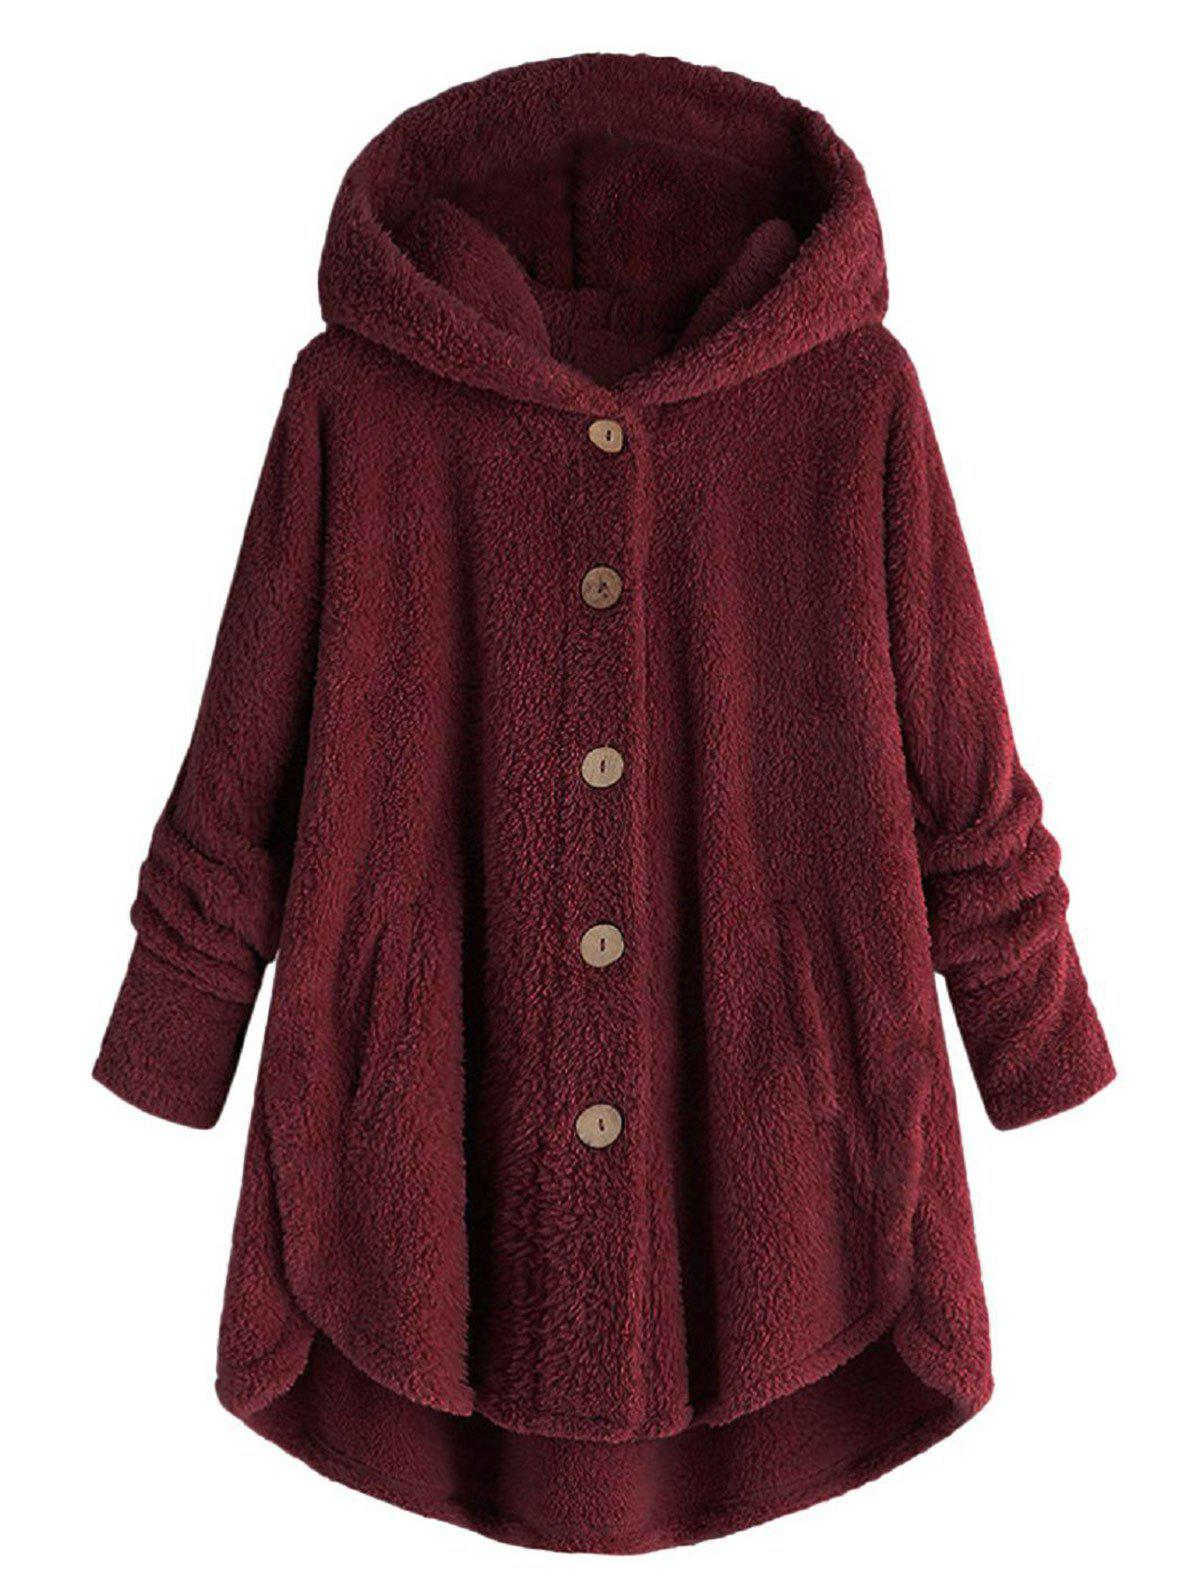 Hooded Fluffy Plus Size High Low Teddy Coat - RED 3X